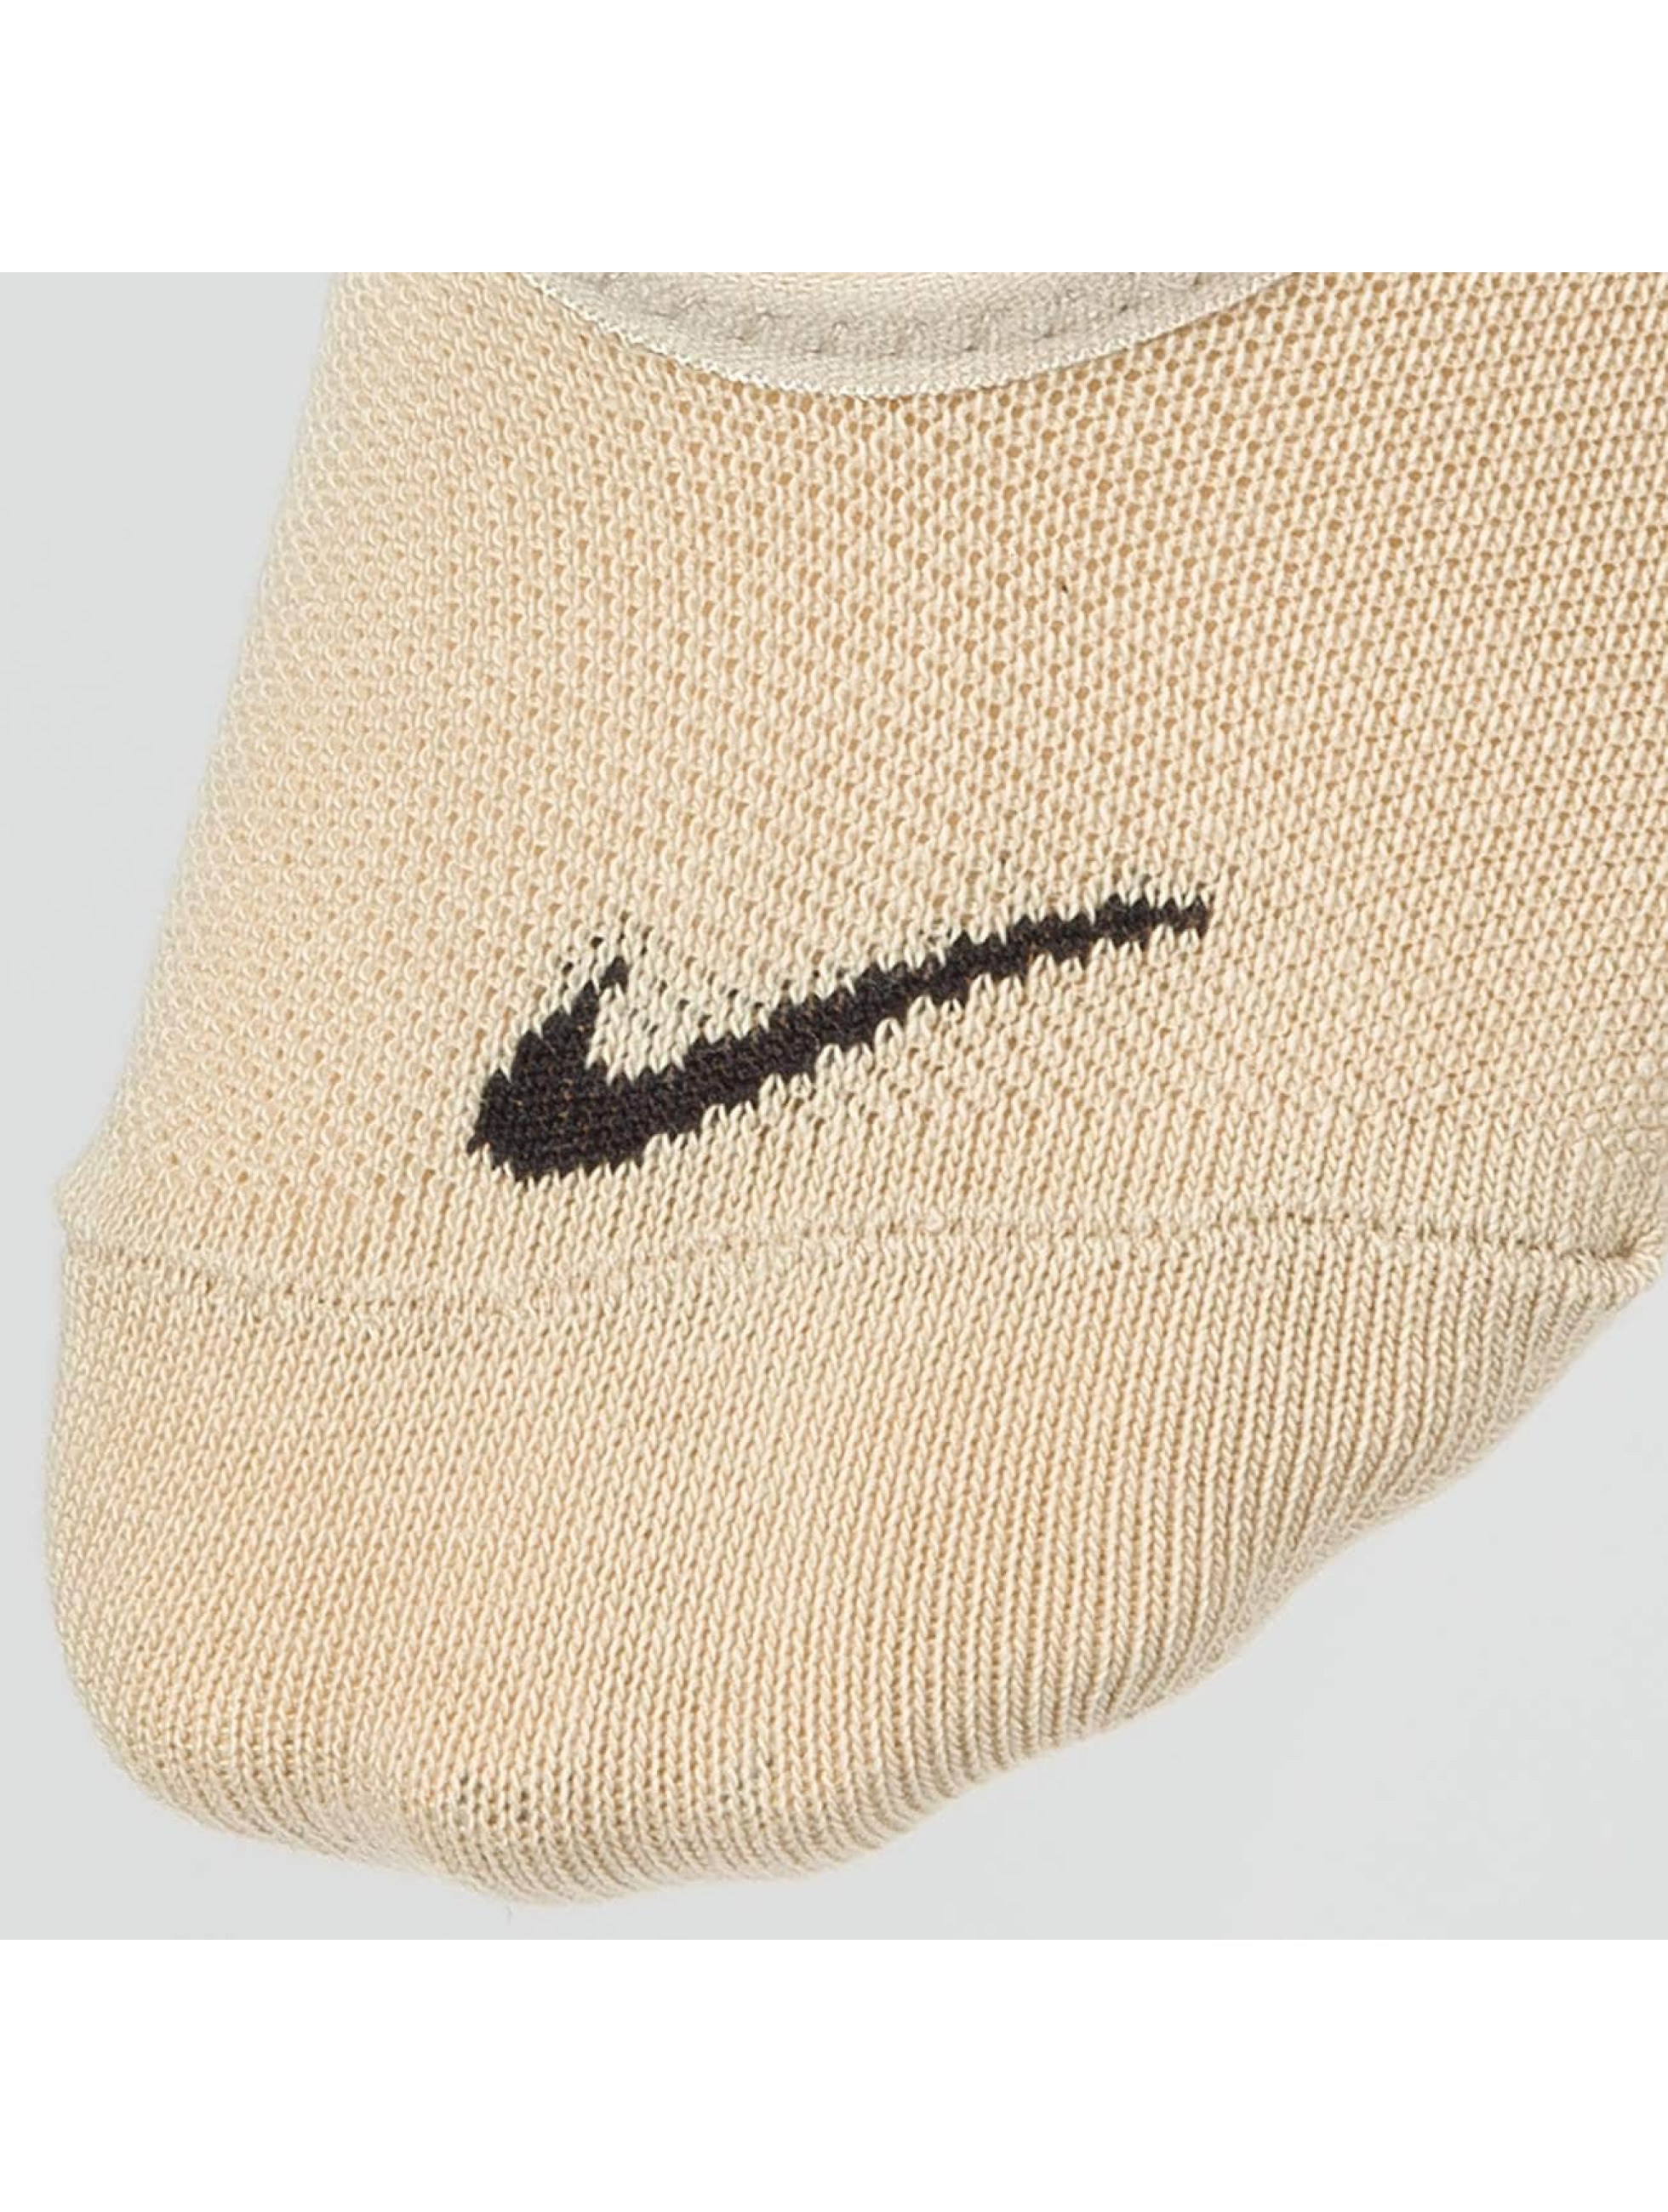 Nike Performance Socken Everyday Lightweight Footie Training 3 Pack bunt